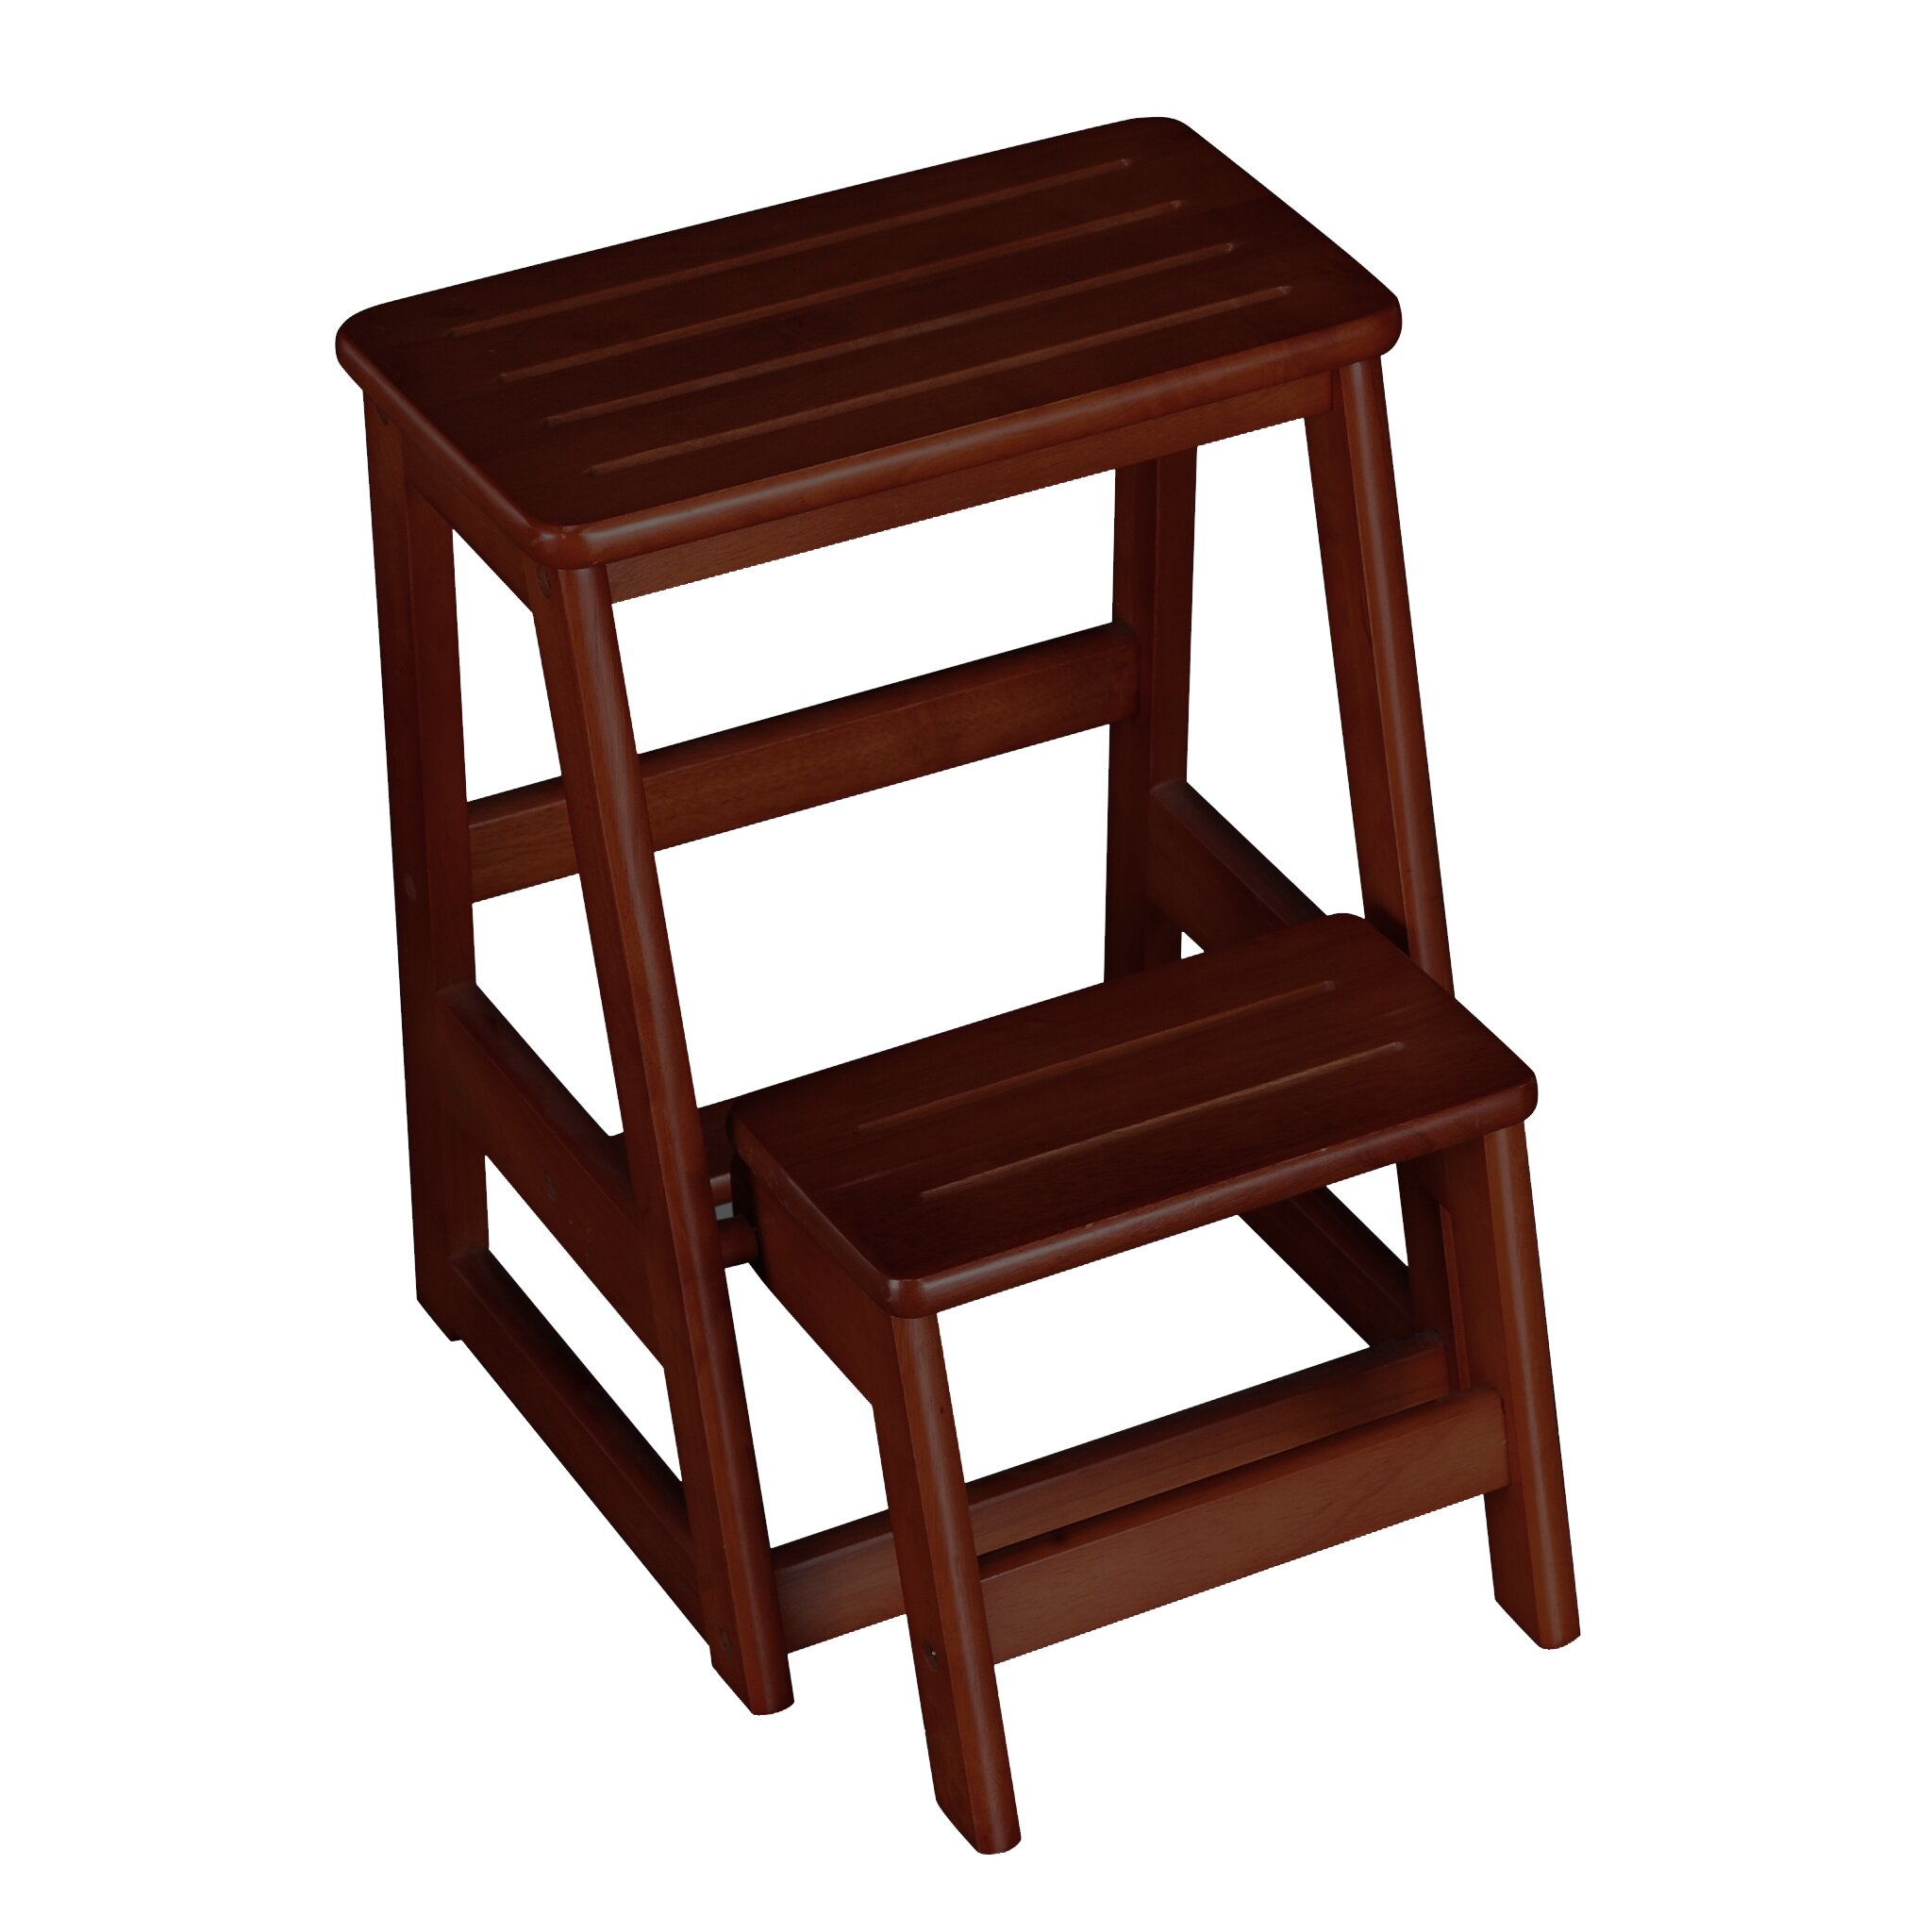 Wildon Home 174 2 Step Wood Folding Compact Step Stool With